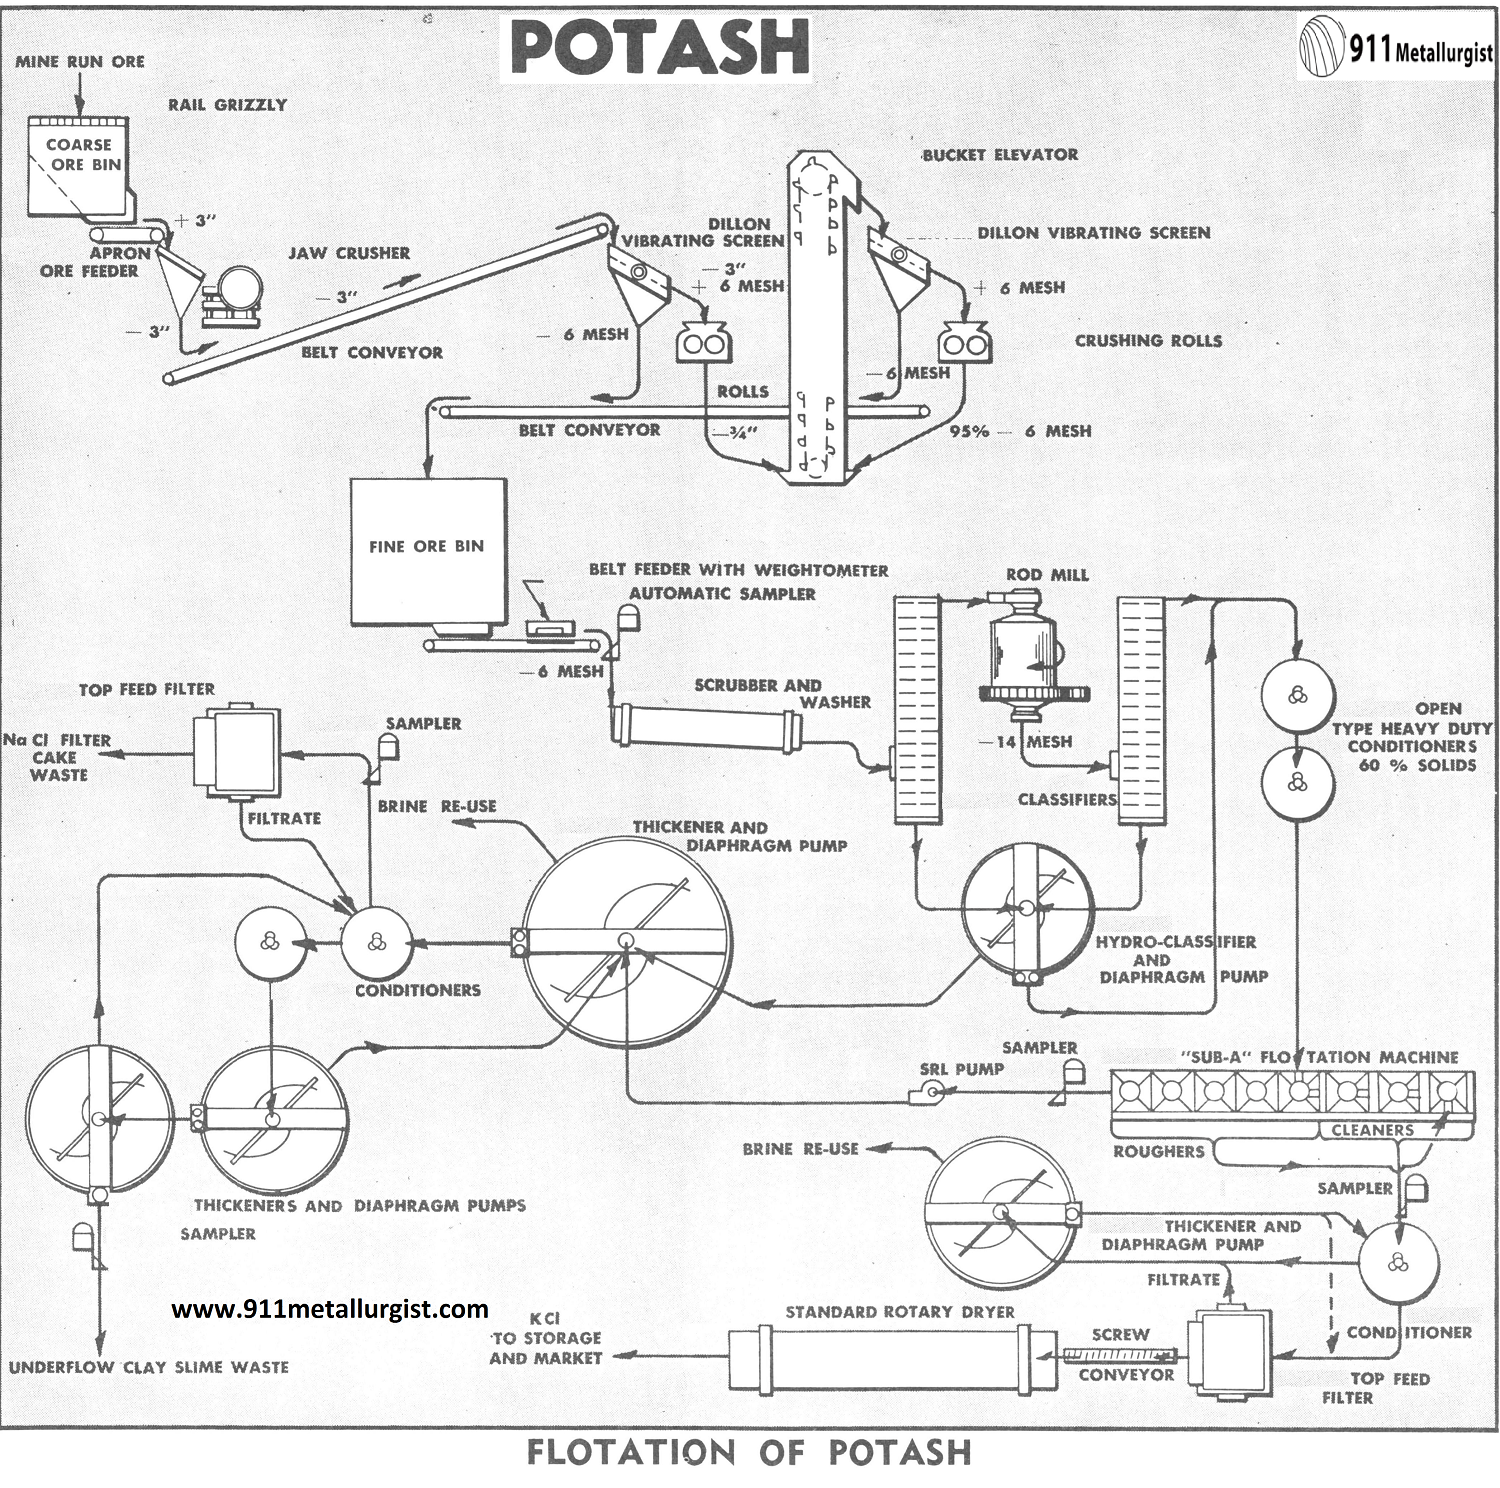 Potash Flotation Process